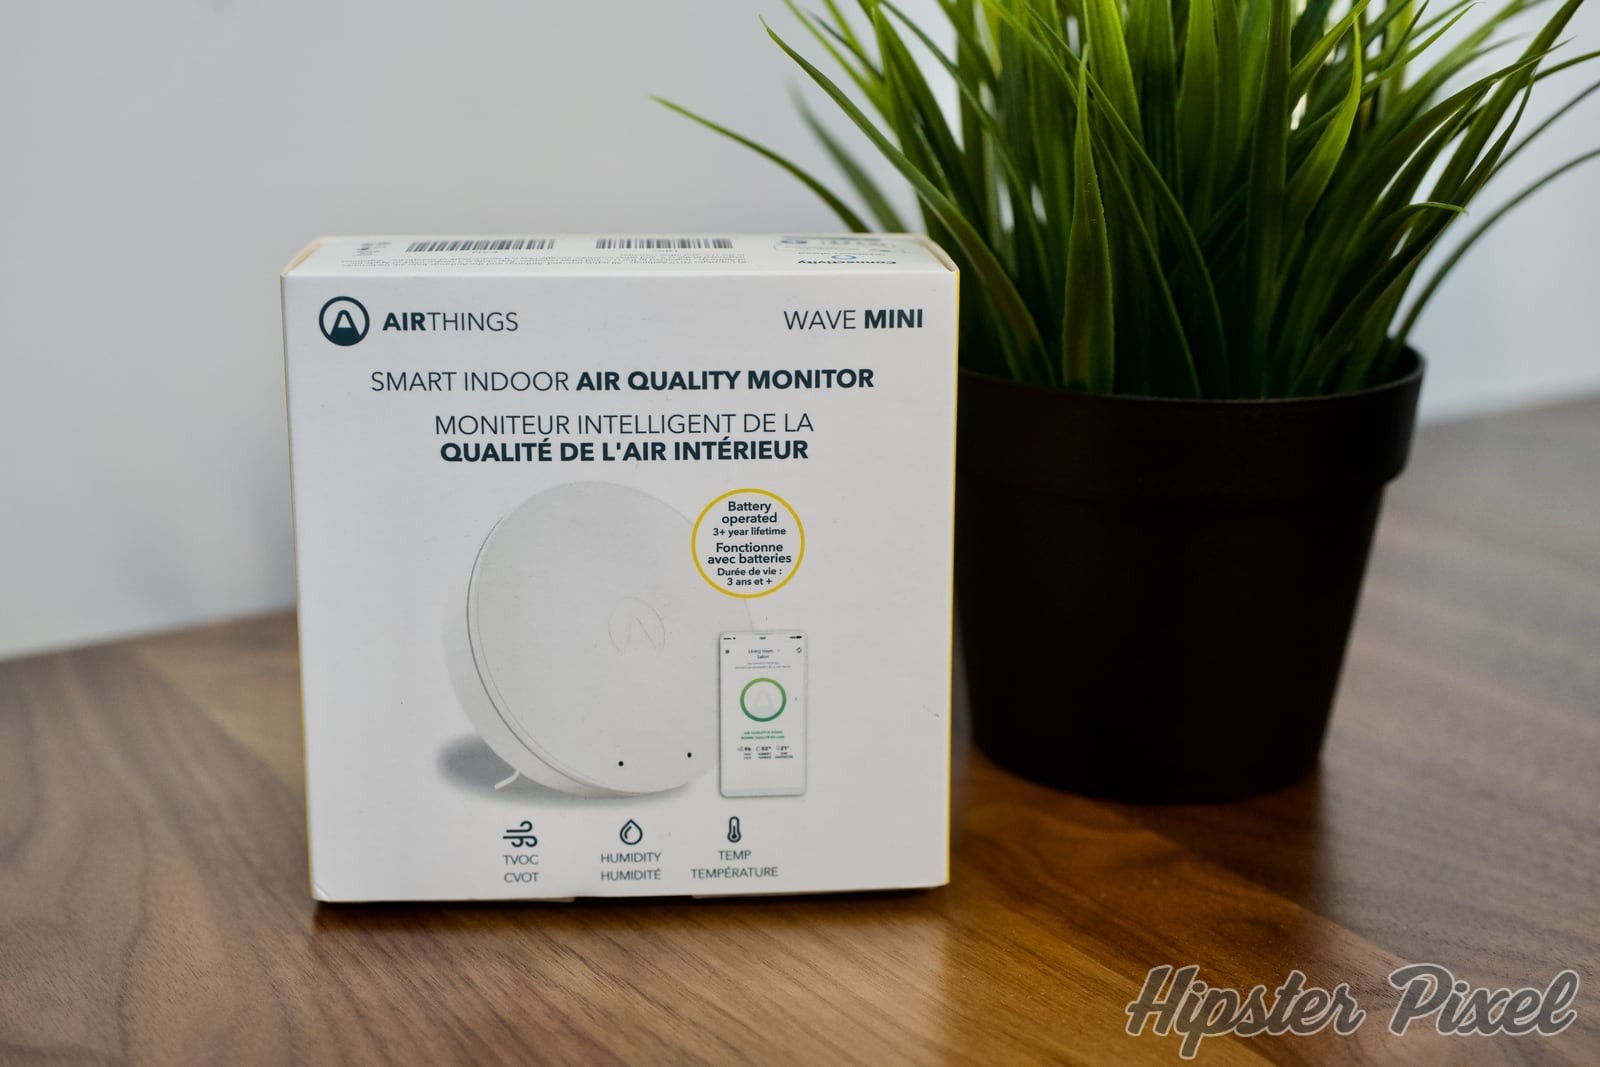 AirThings Wave Mini, Tiny Air Quality Monitor With Mold Risk Indication [Review]